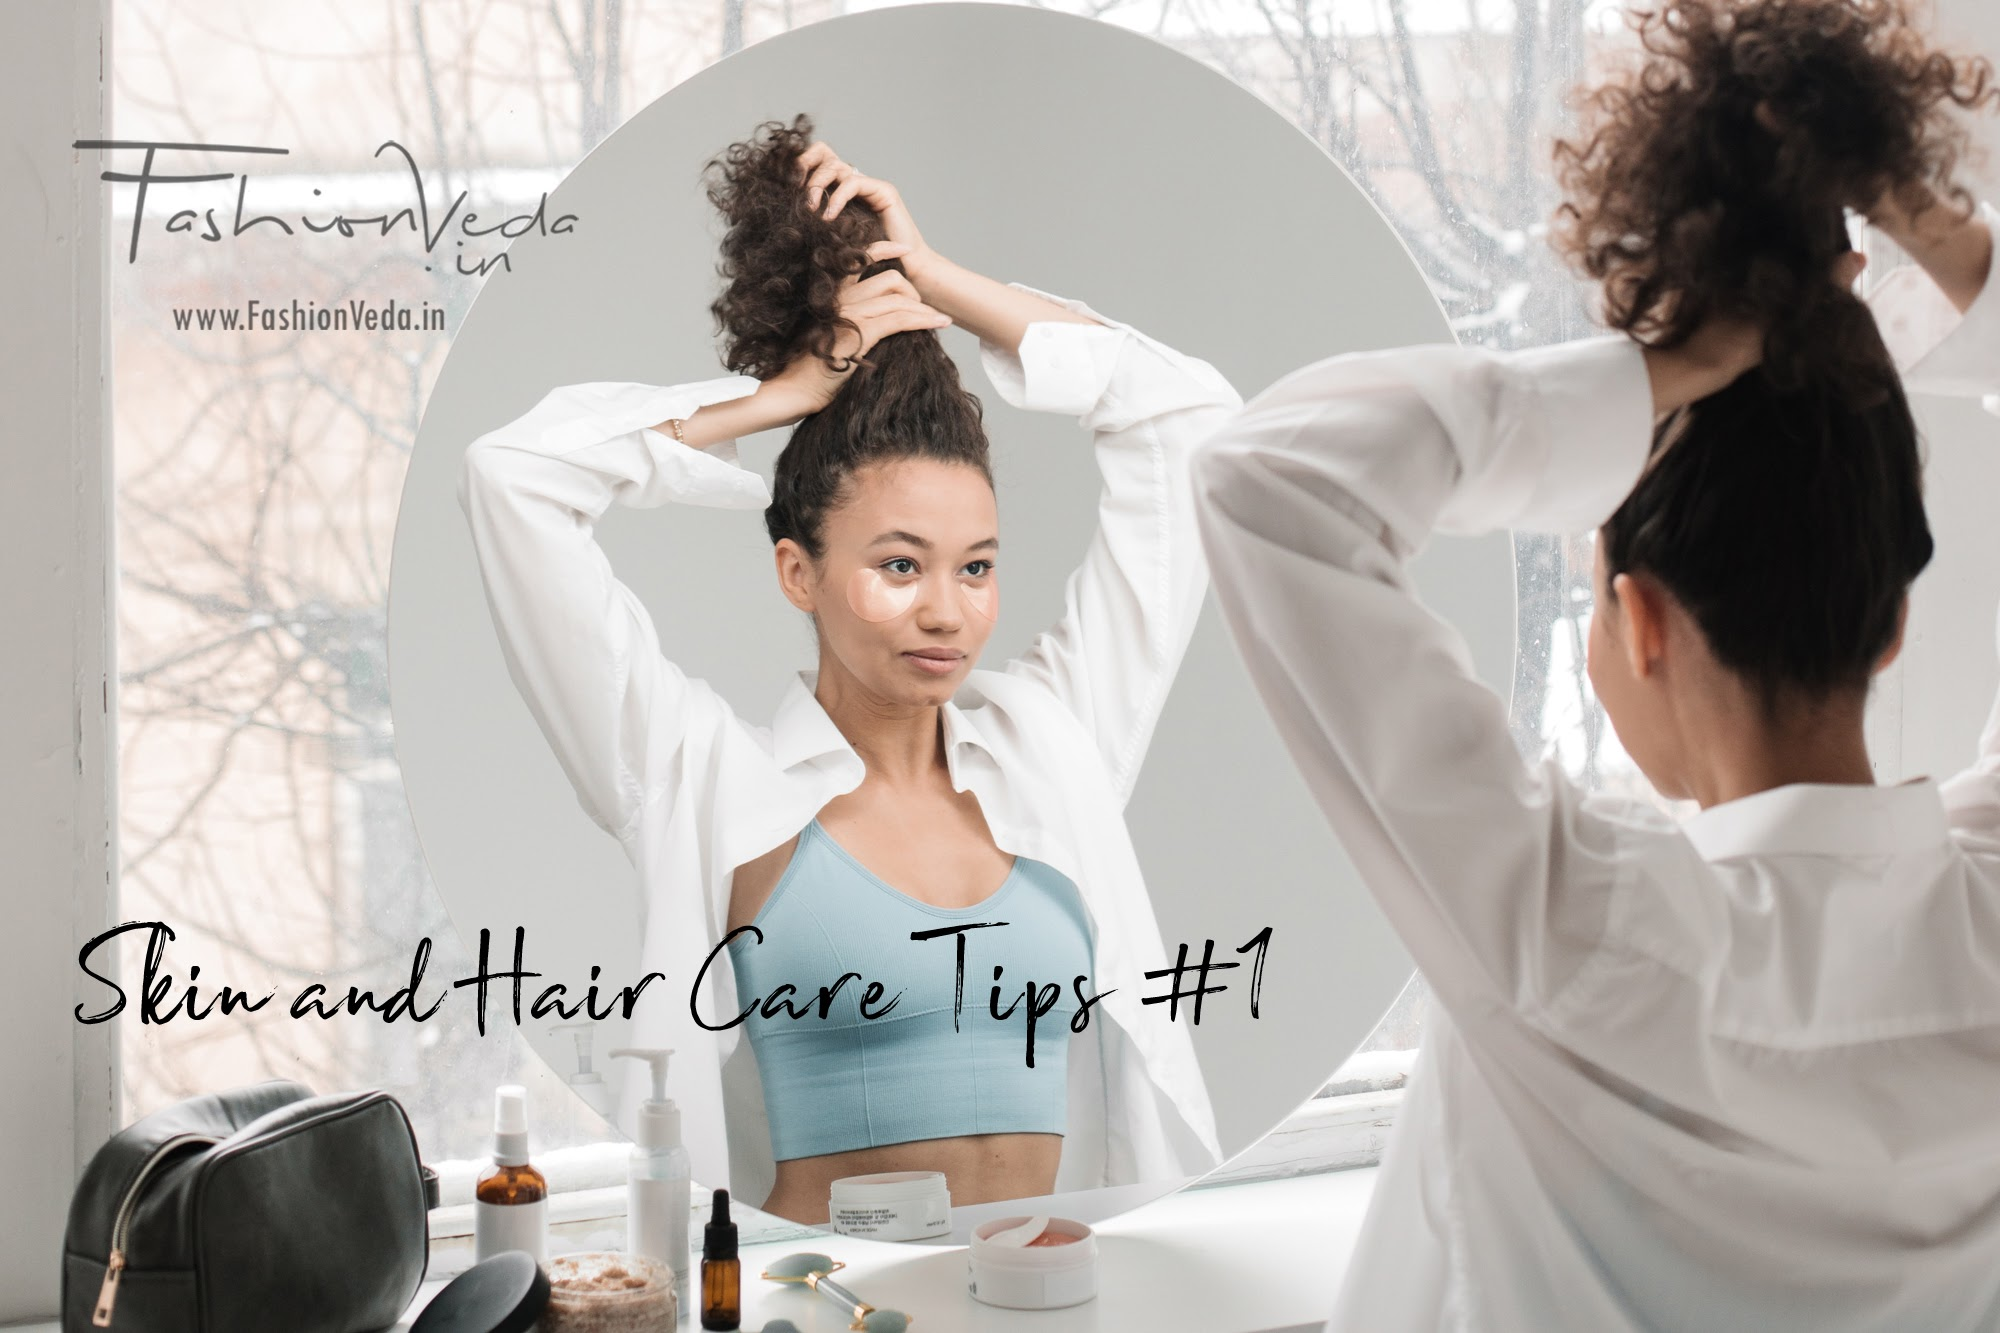 Skin and Hair Care Tips #1